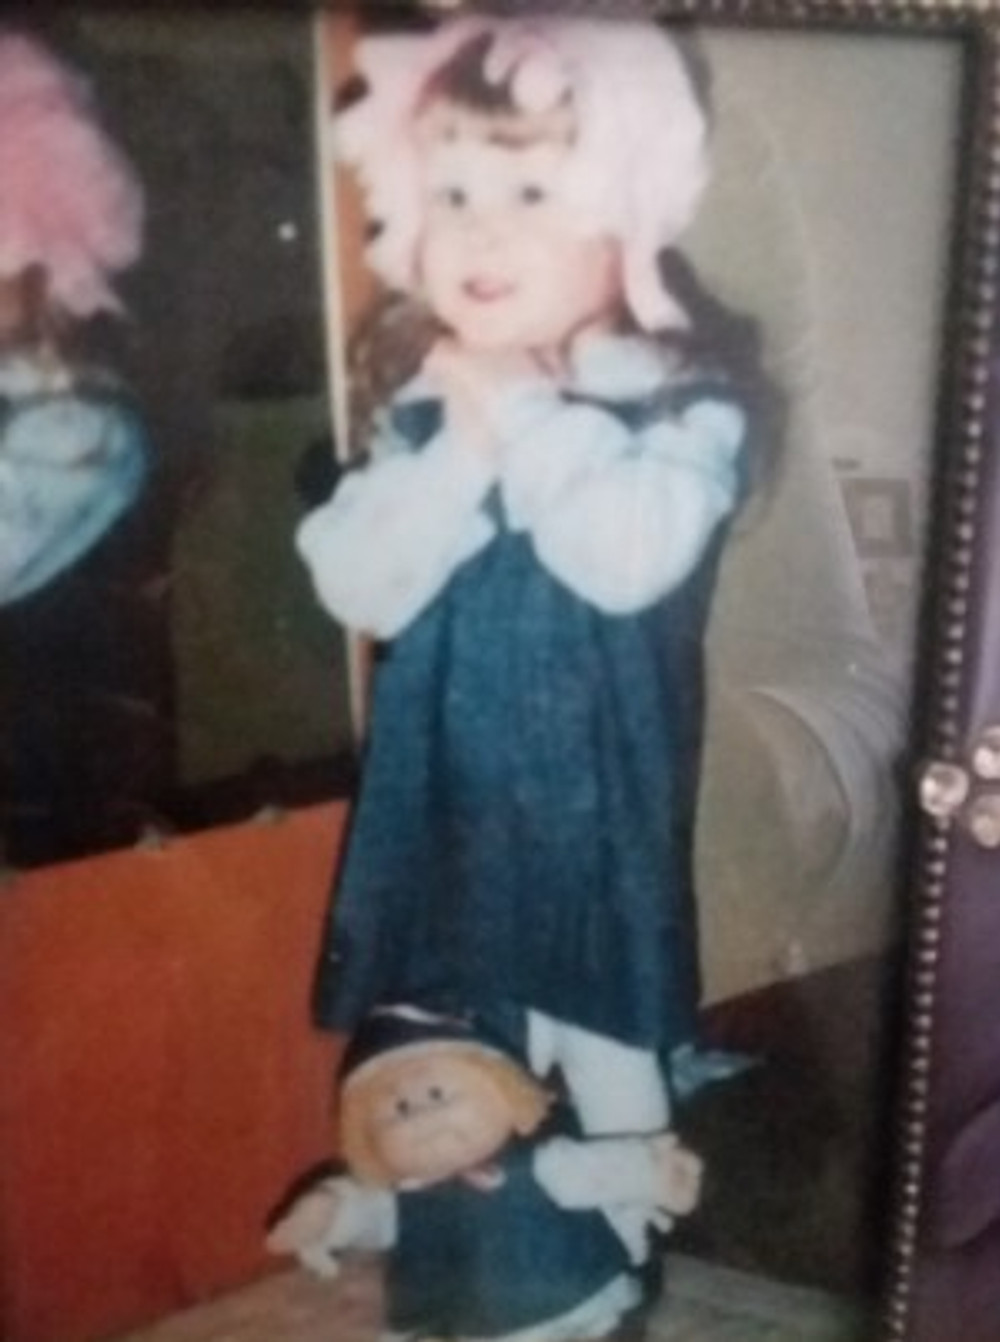 When I was a little girl, I was my older sister's personal baby doll.